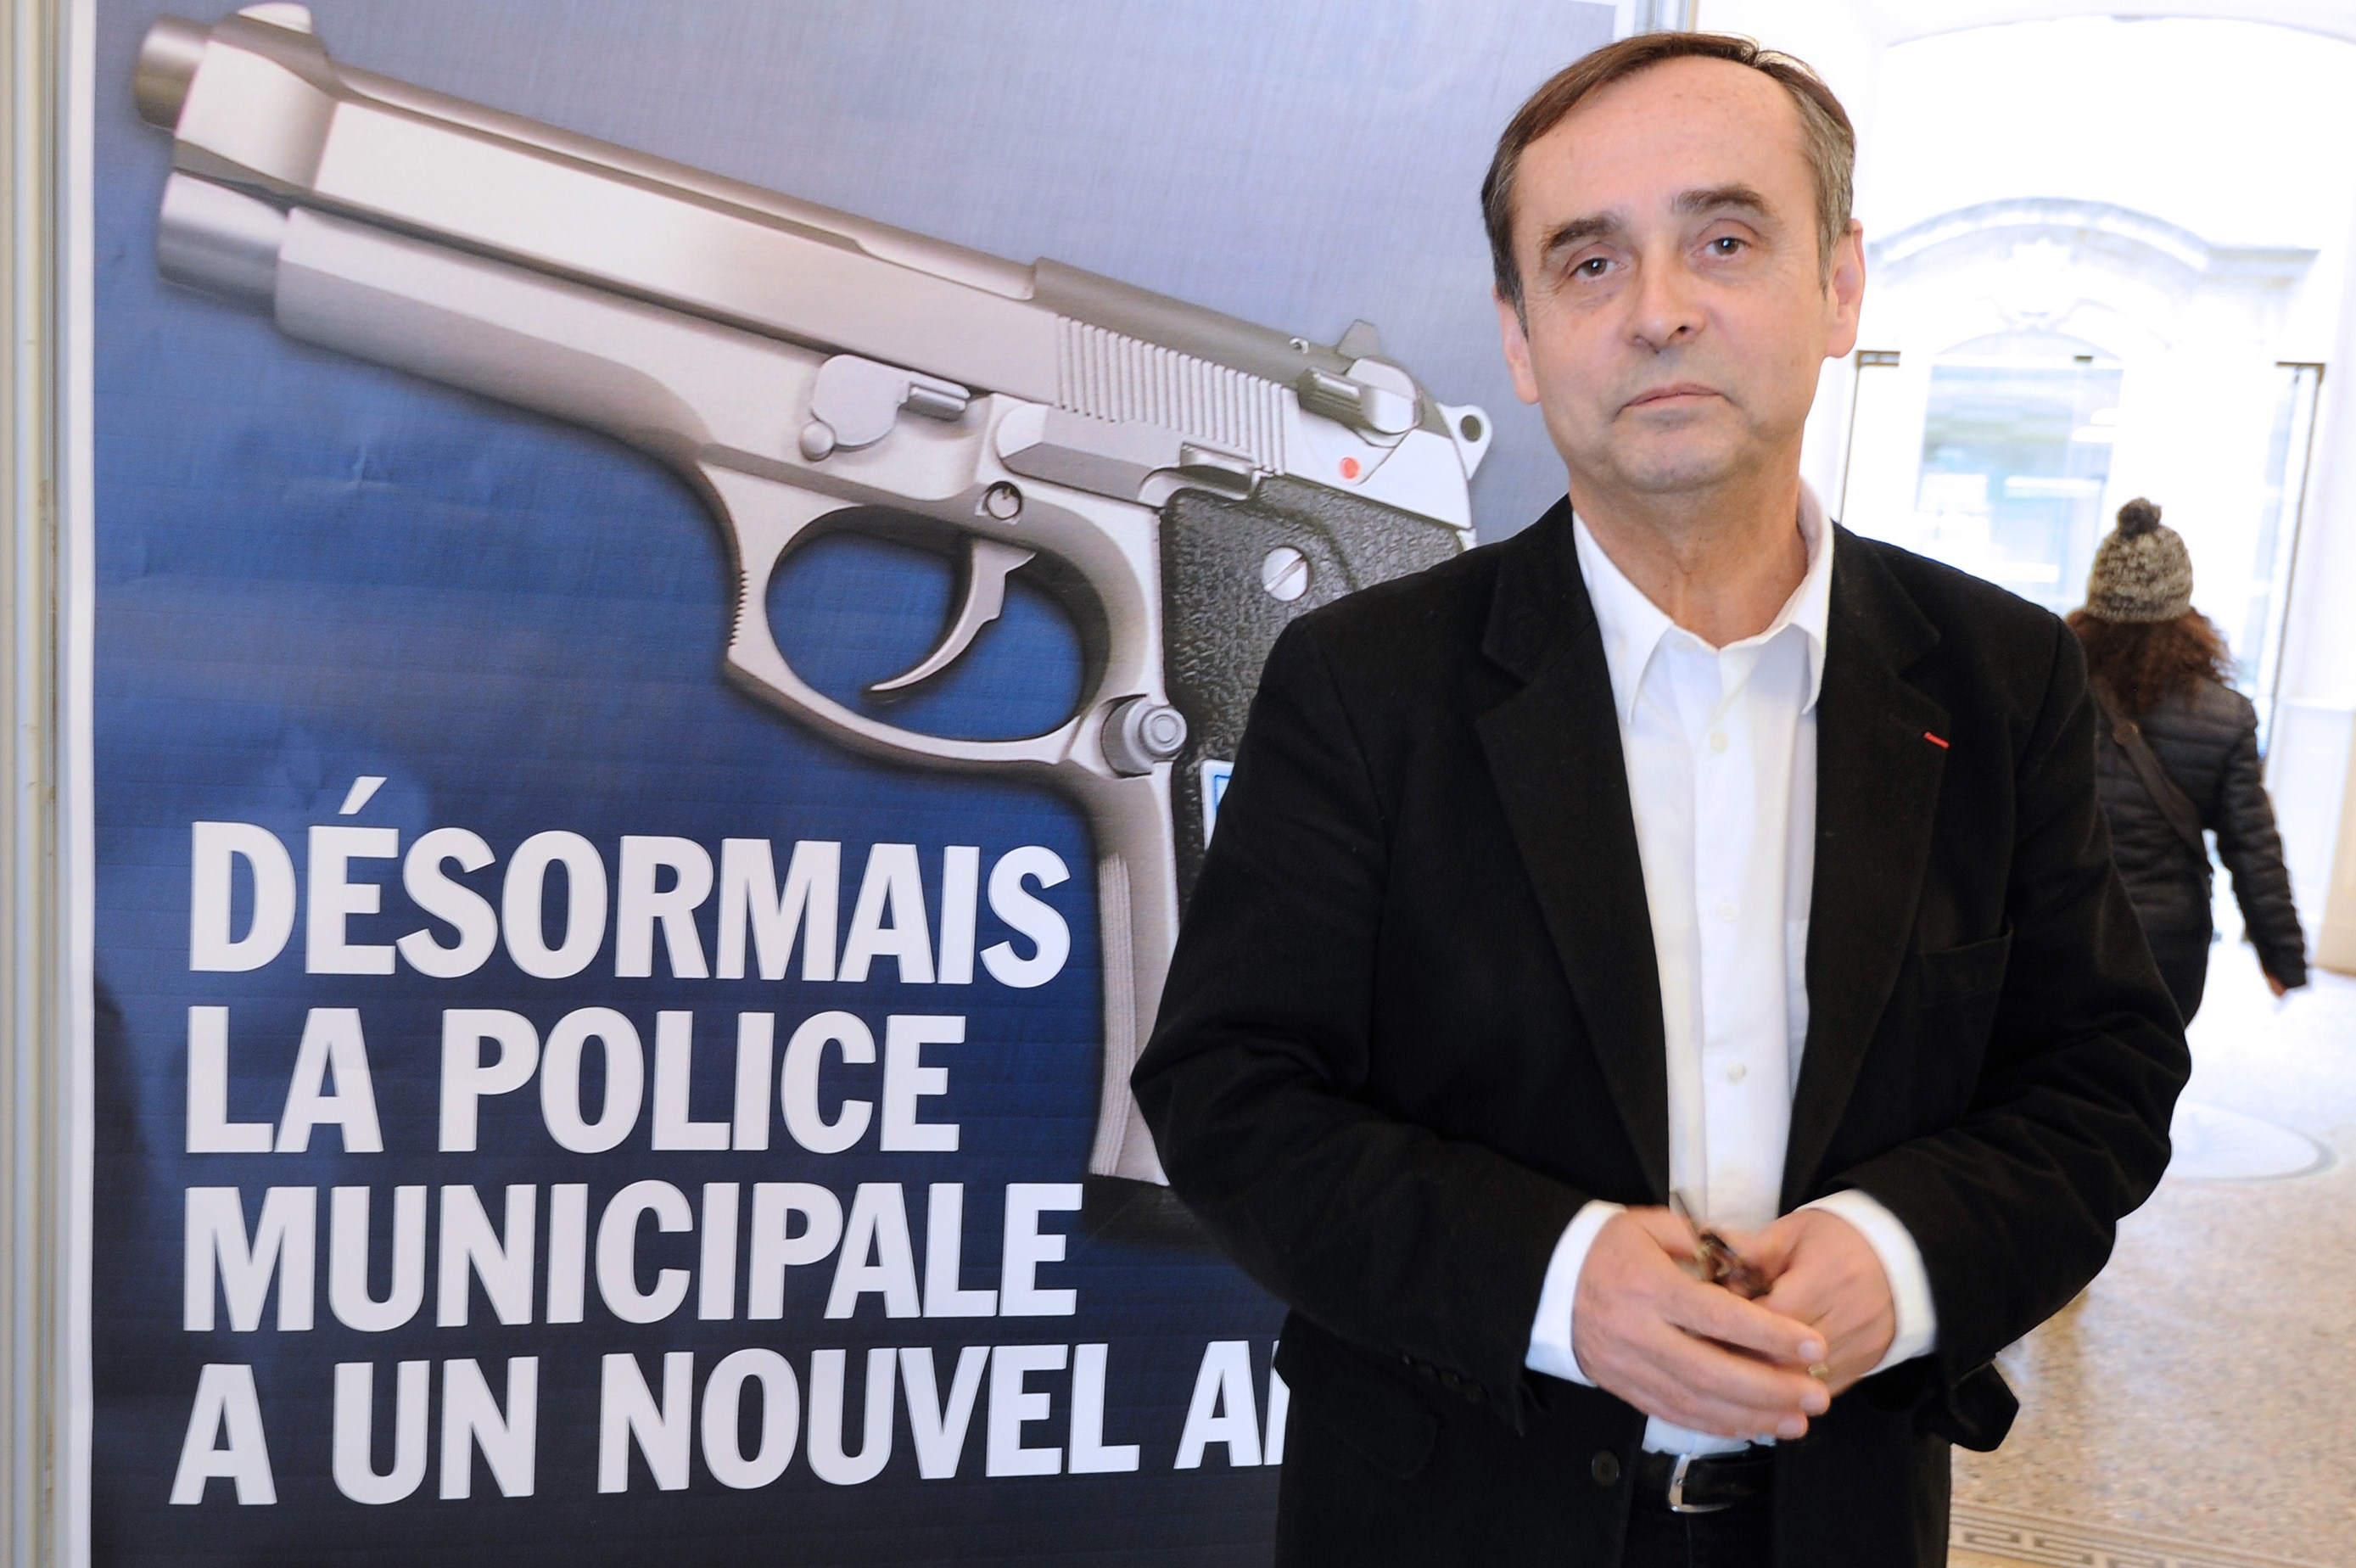 "Beziers mayor Robert Menard poses on February 11, 2015 in front of a municipality campaign poster showing an automatic 7.65 handgun, with a campaign slogans reading : ""From now on, the Municipal Police has a new friend"". Since February 1, the Beziers municipal police is equipped with lethal weapons, in this case automatic 7.65 handguns, as nine armed police officers already patrol the streets, mostly at night, of the town whose far-right party National Front-backed mayor Robert Menard was elected last year. AFP PHOTO / SYLVAIN THOMAS"